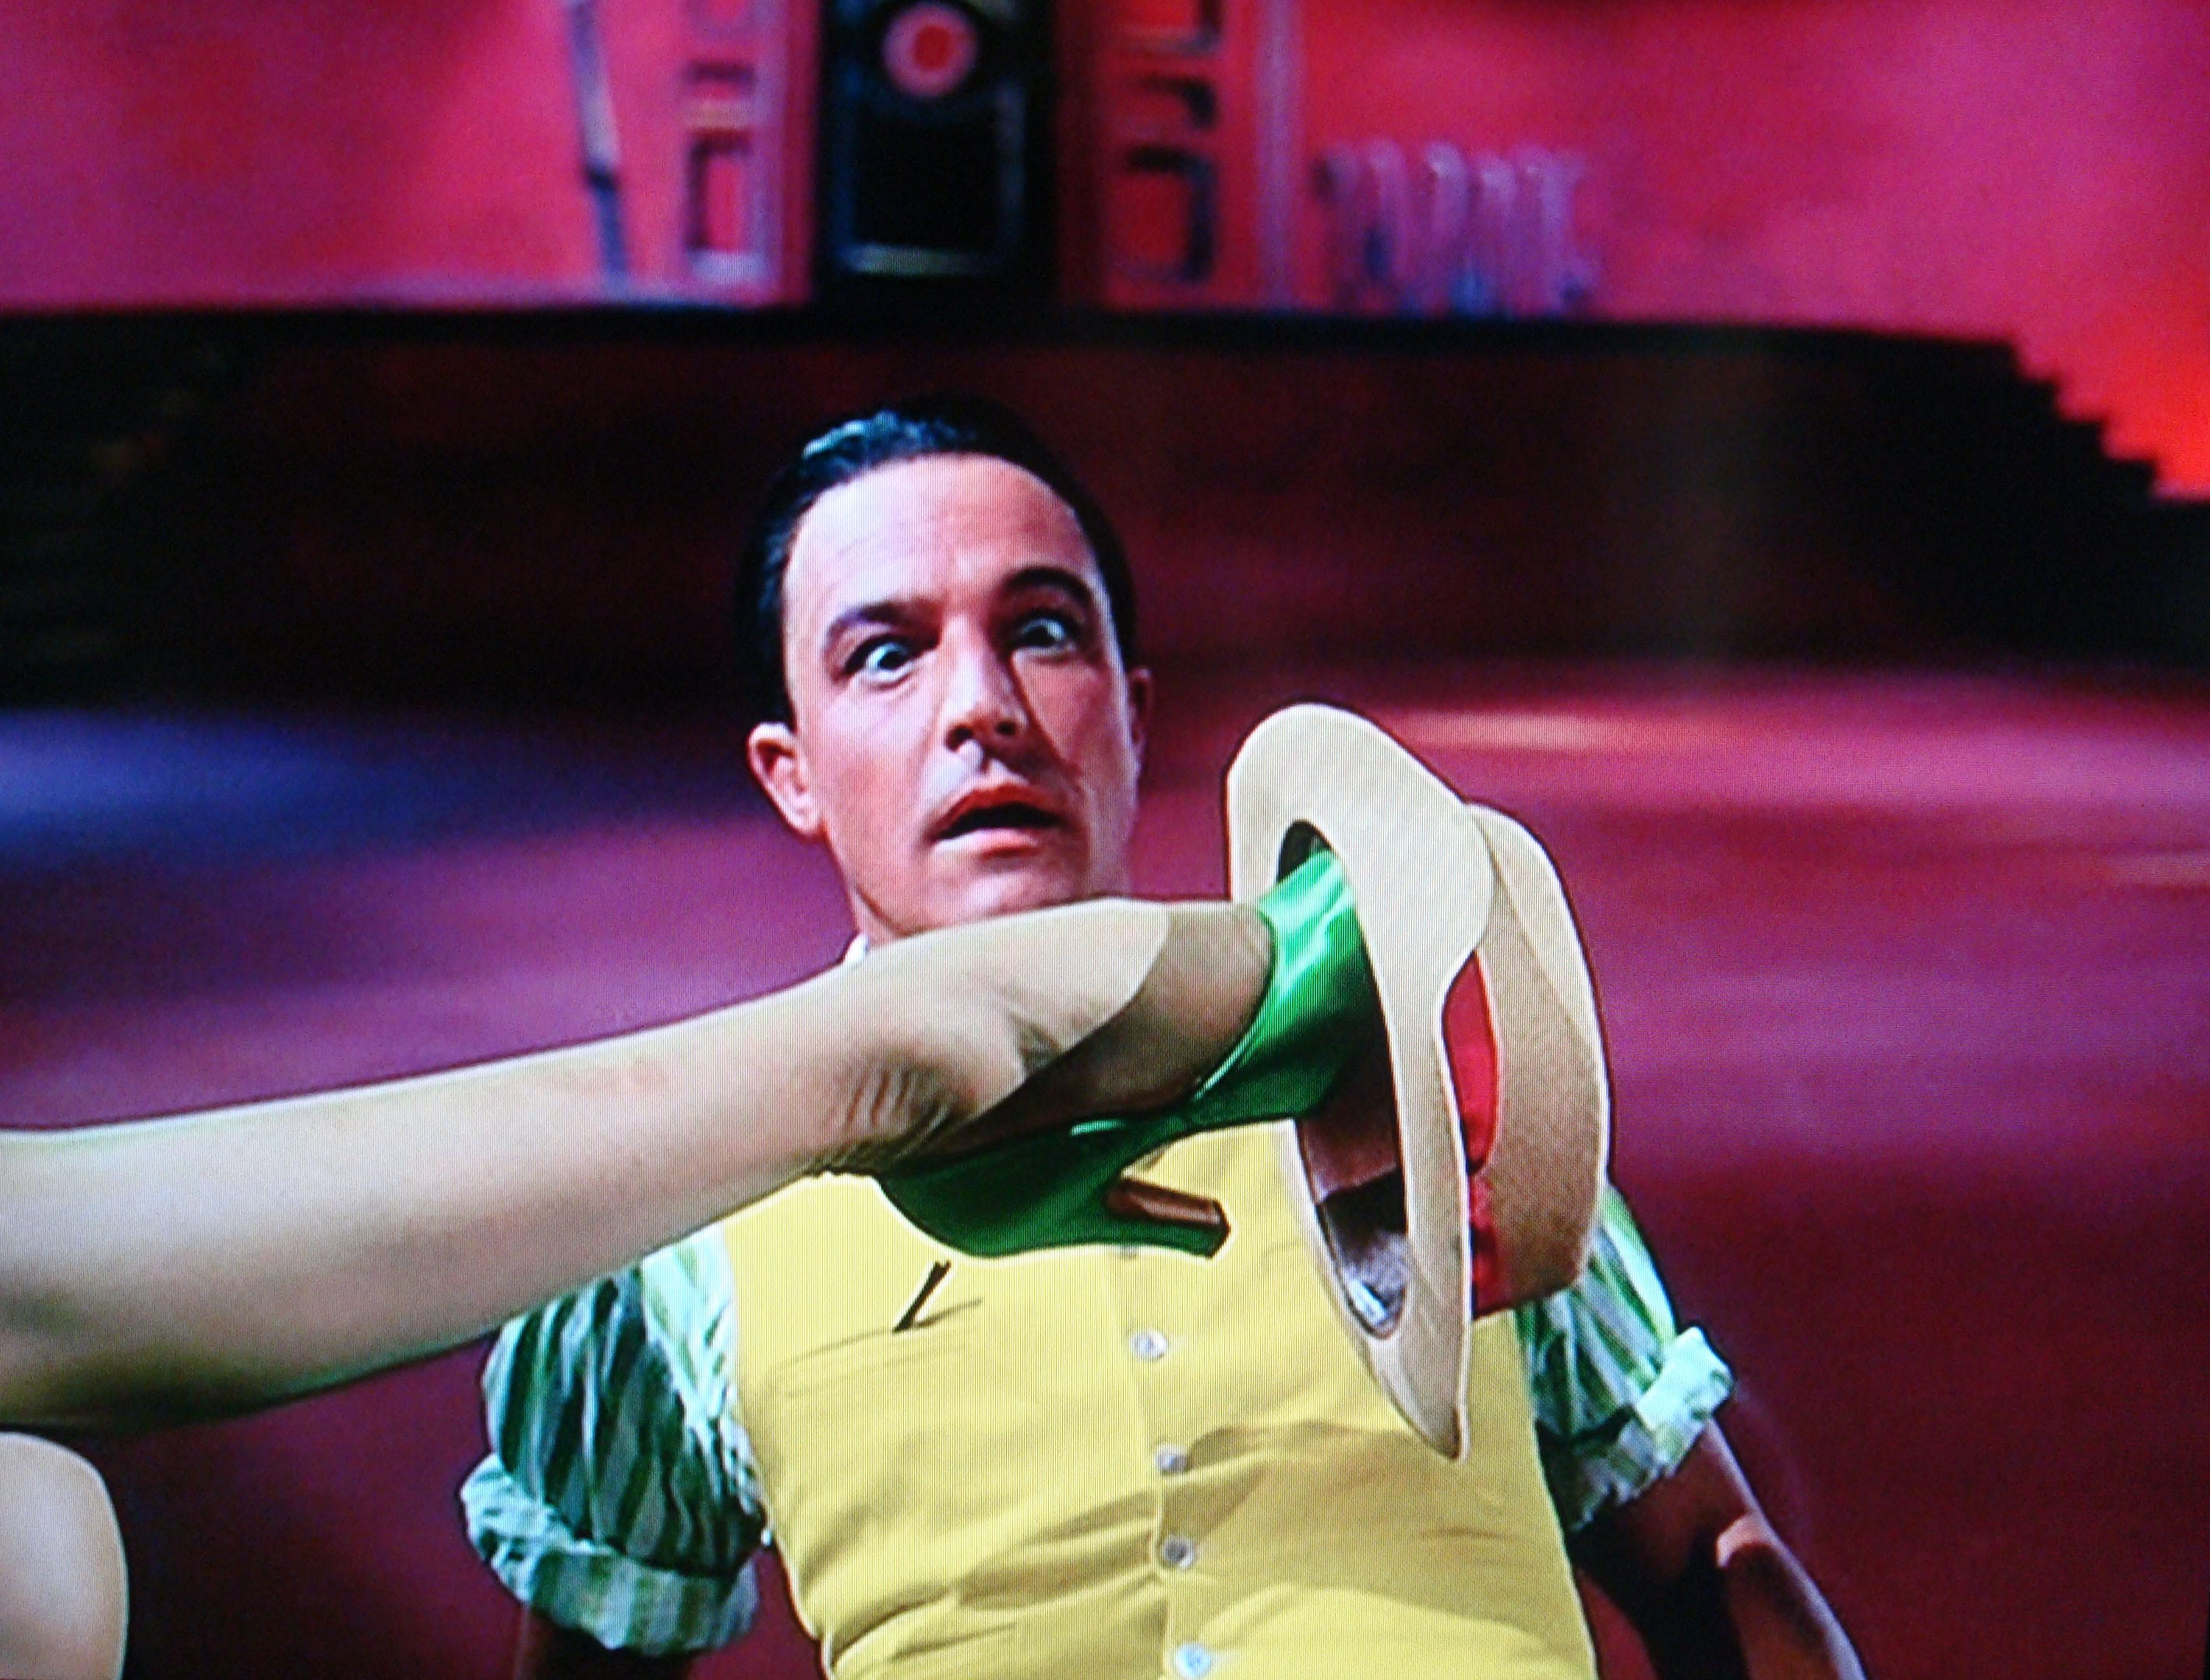 Gene Kelly Widescreen for desktop